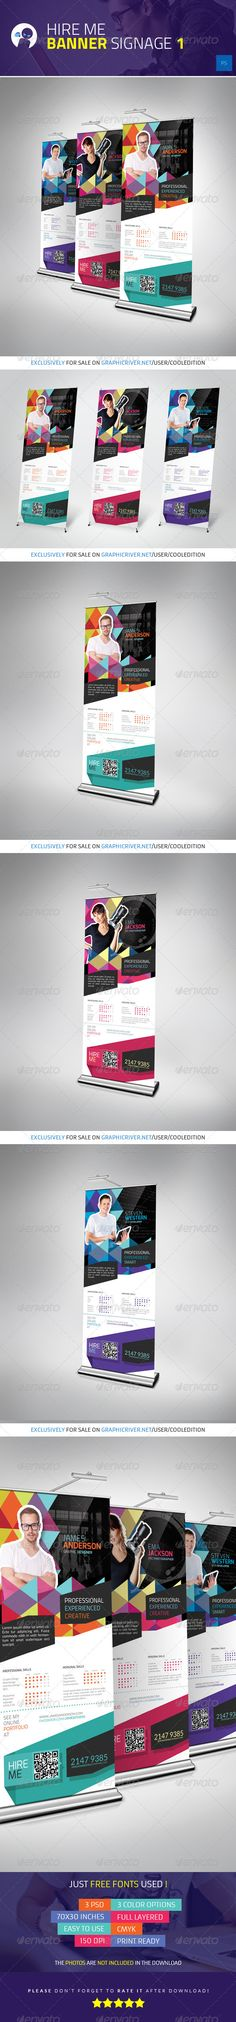 Buy Hire Me - Banner Signage 1 by cooledition on GraphicRiver. Hire Me – Banner Signage 1 Suitable for: Signage Design, Banner Design, Flyer Design, Web Design, Letterhead Template, Brochure Template, Flyer Template, Event Banner, Web Banner